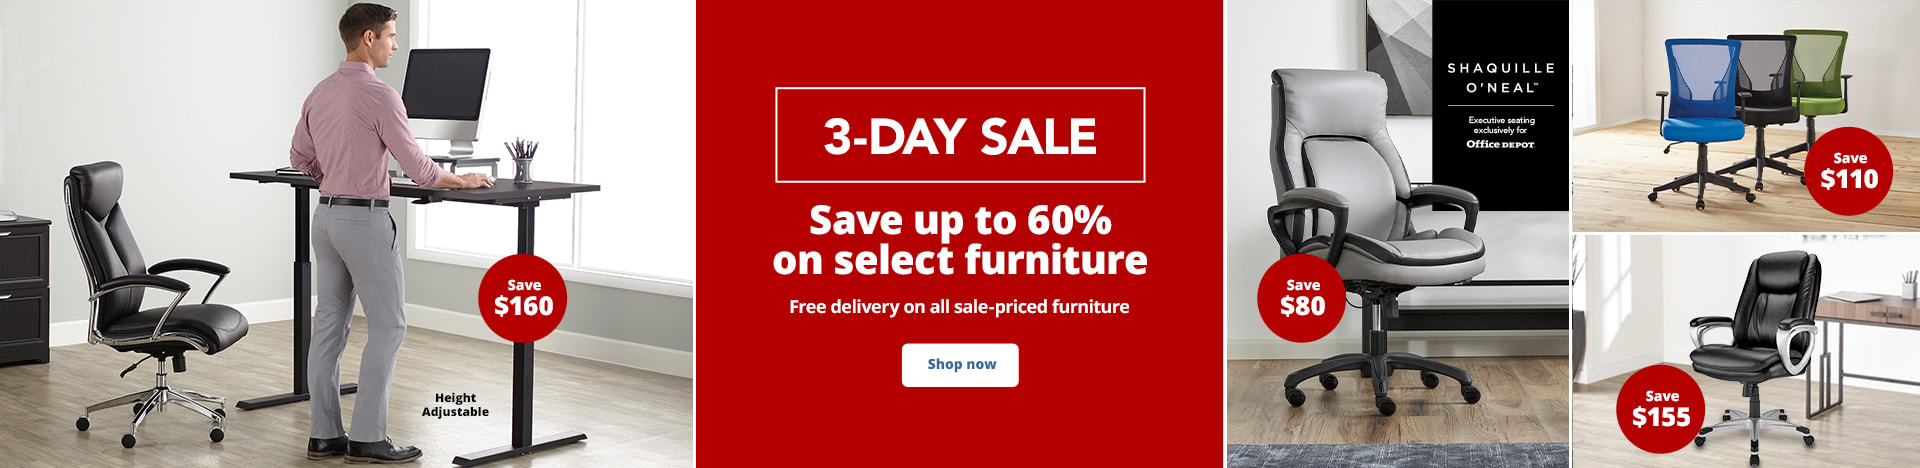 3-Day Sale. Save up to 60% on select furniture Free delivery on all sale-priced furniture